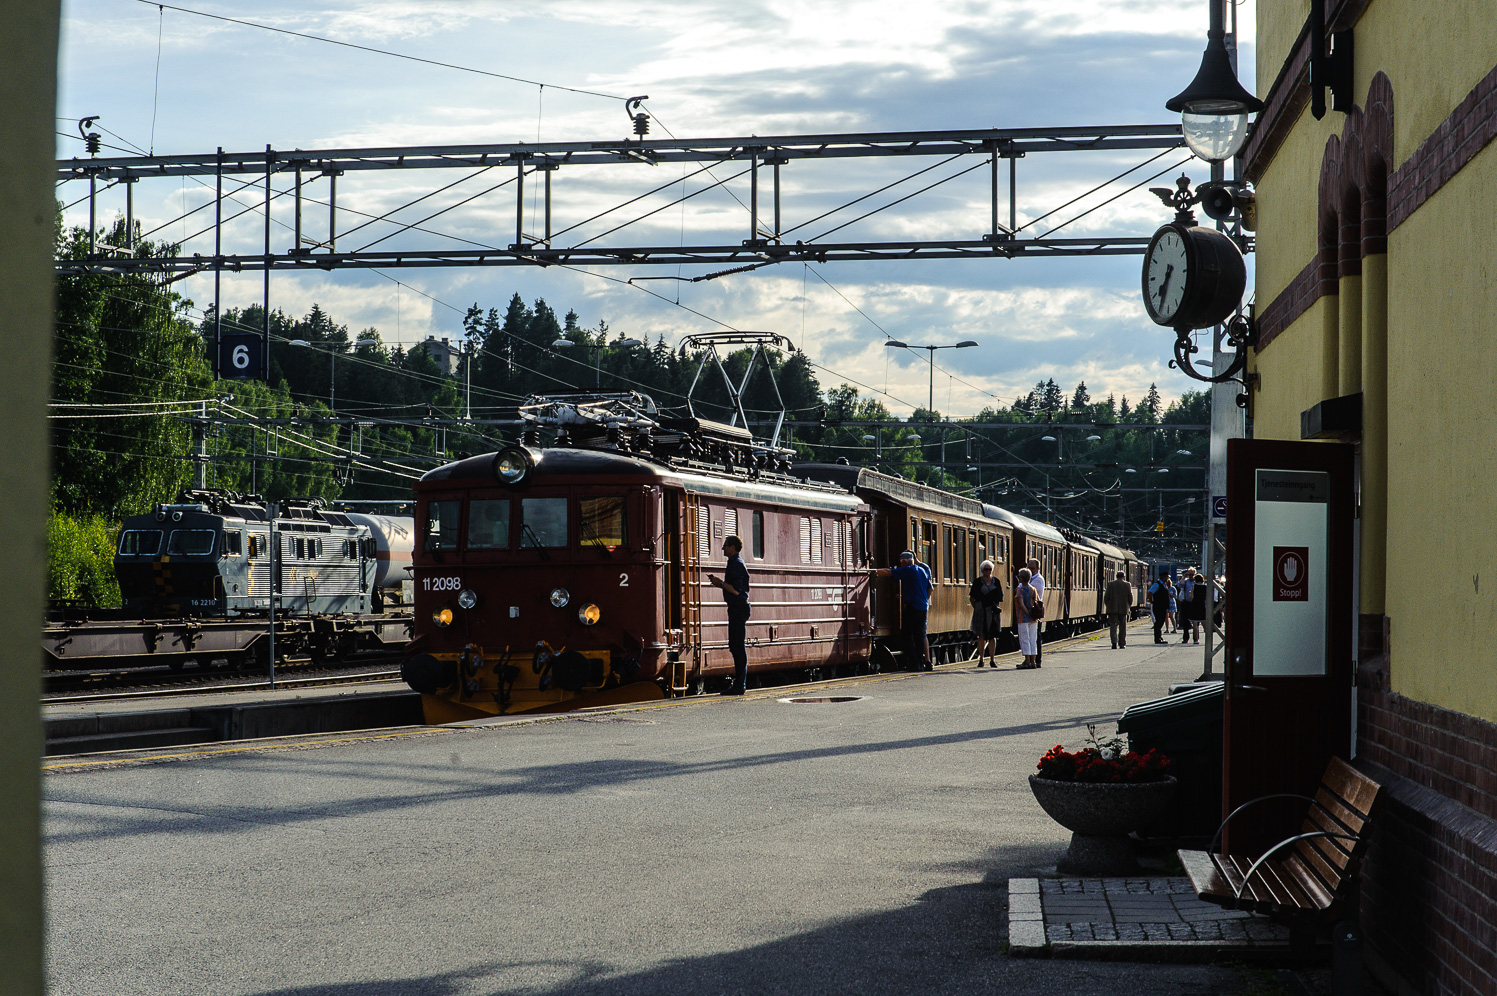 Hønefoss is officially the starting point of Bergensbanen. Here, a museum train makes a halt.